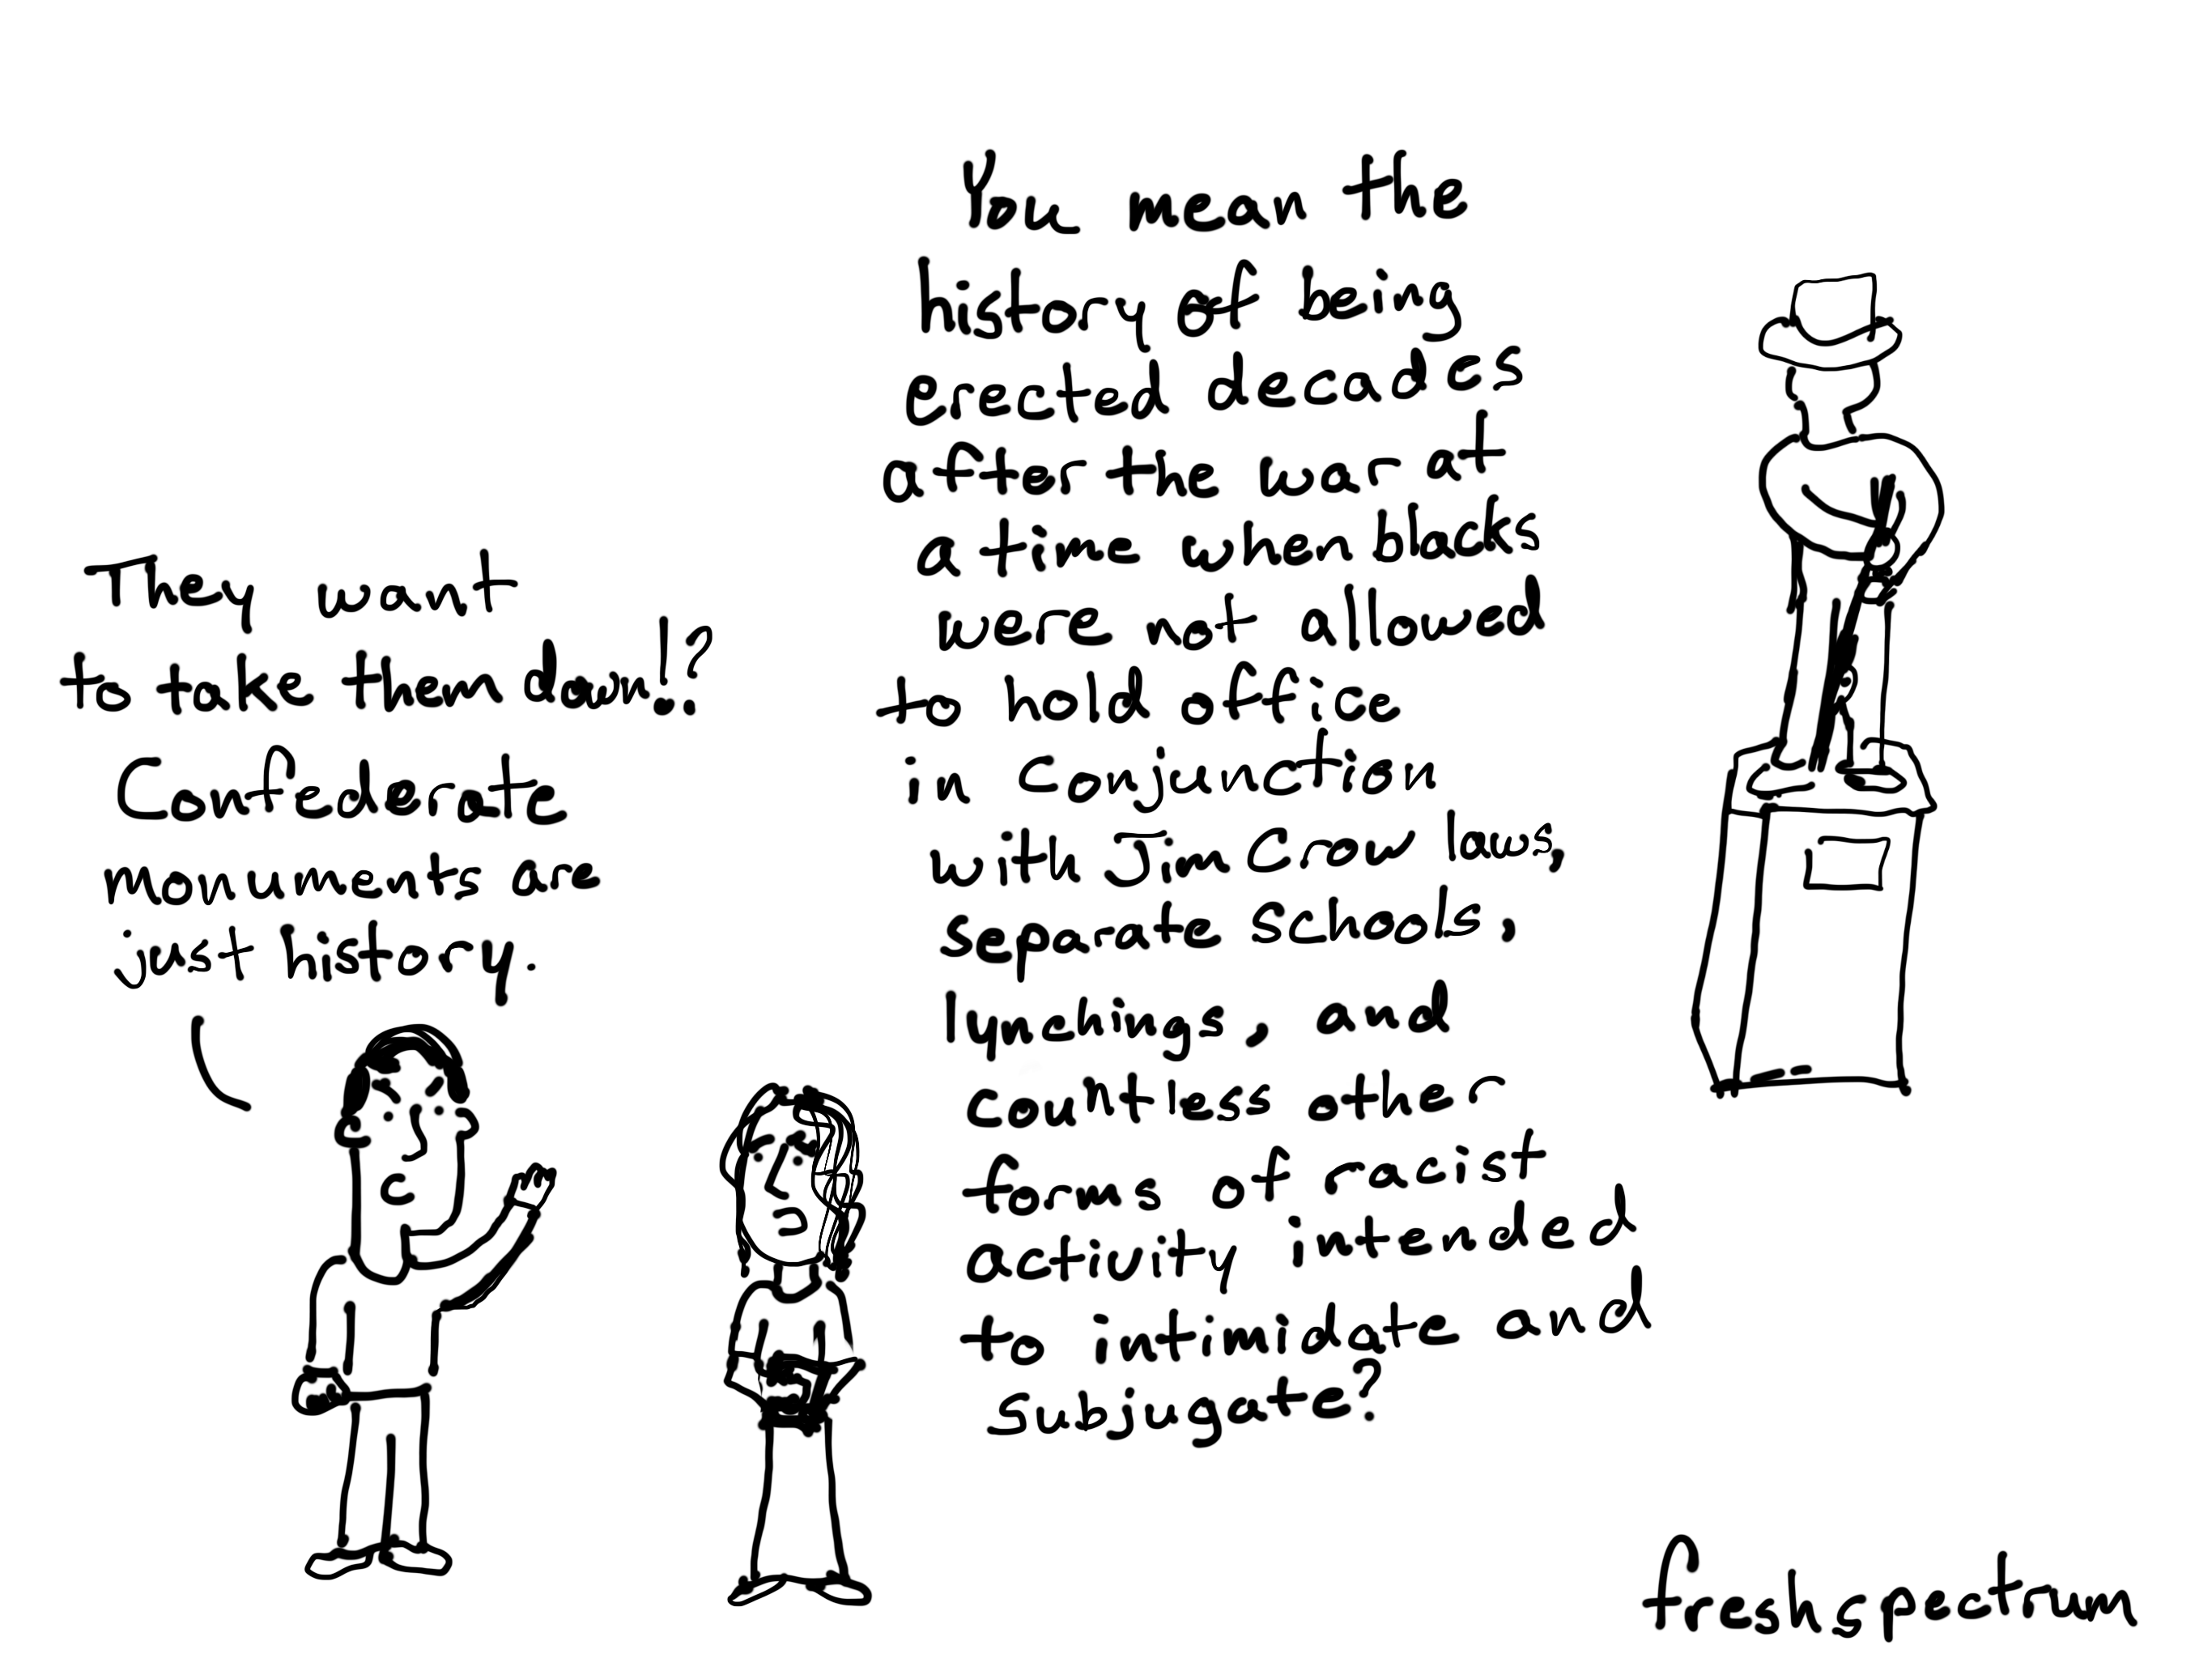 A cartoon about the history of confederate monuments.